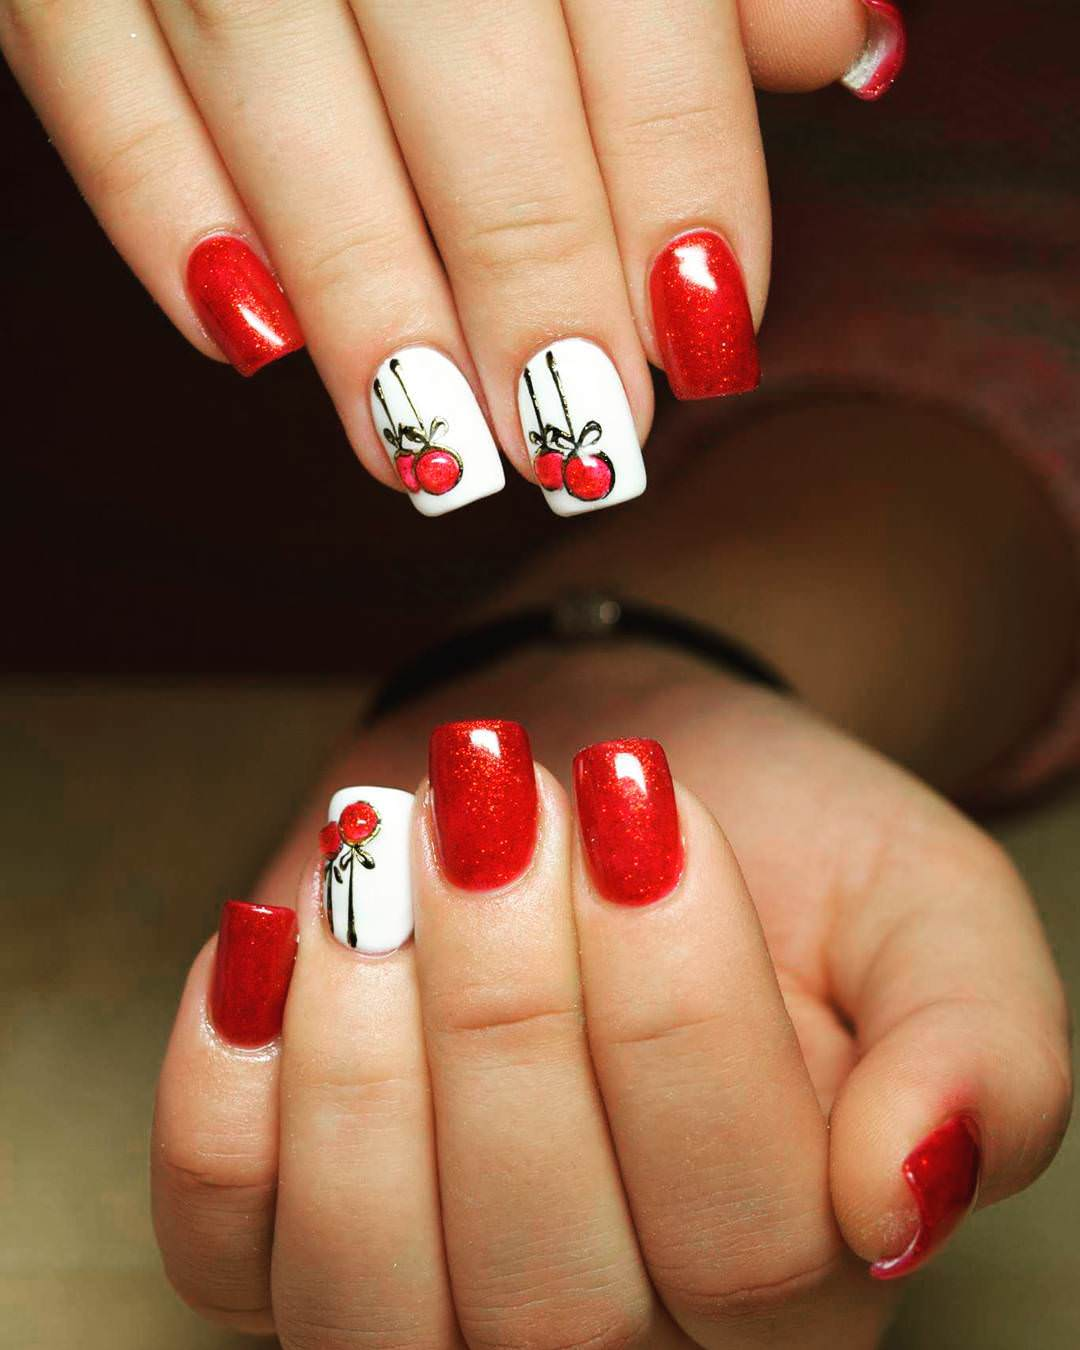 29 Red Acrylic Nail Art Designs  Ideas  Design Trends  Premium PSD Vector Downloads